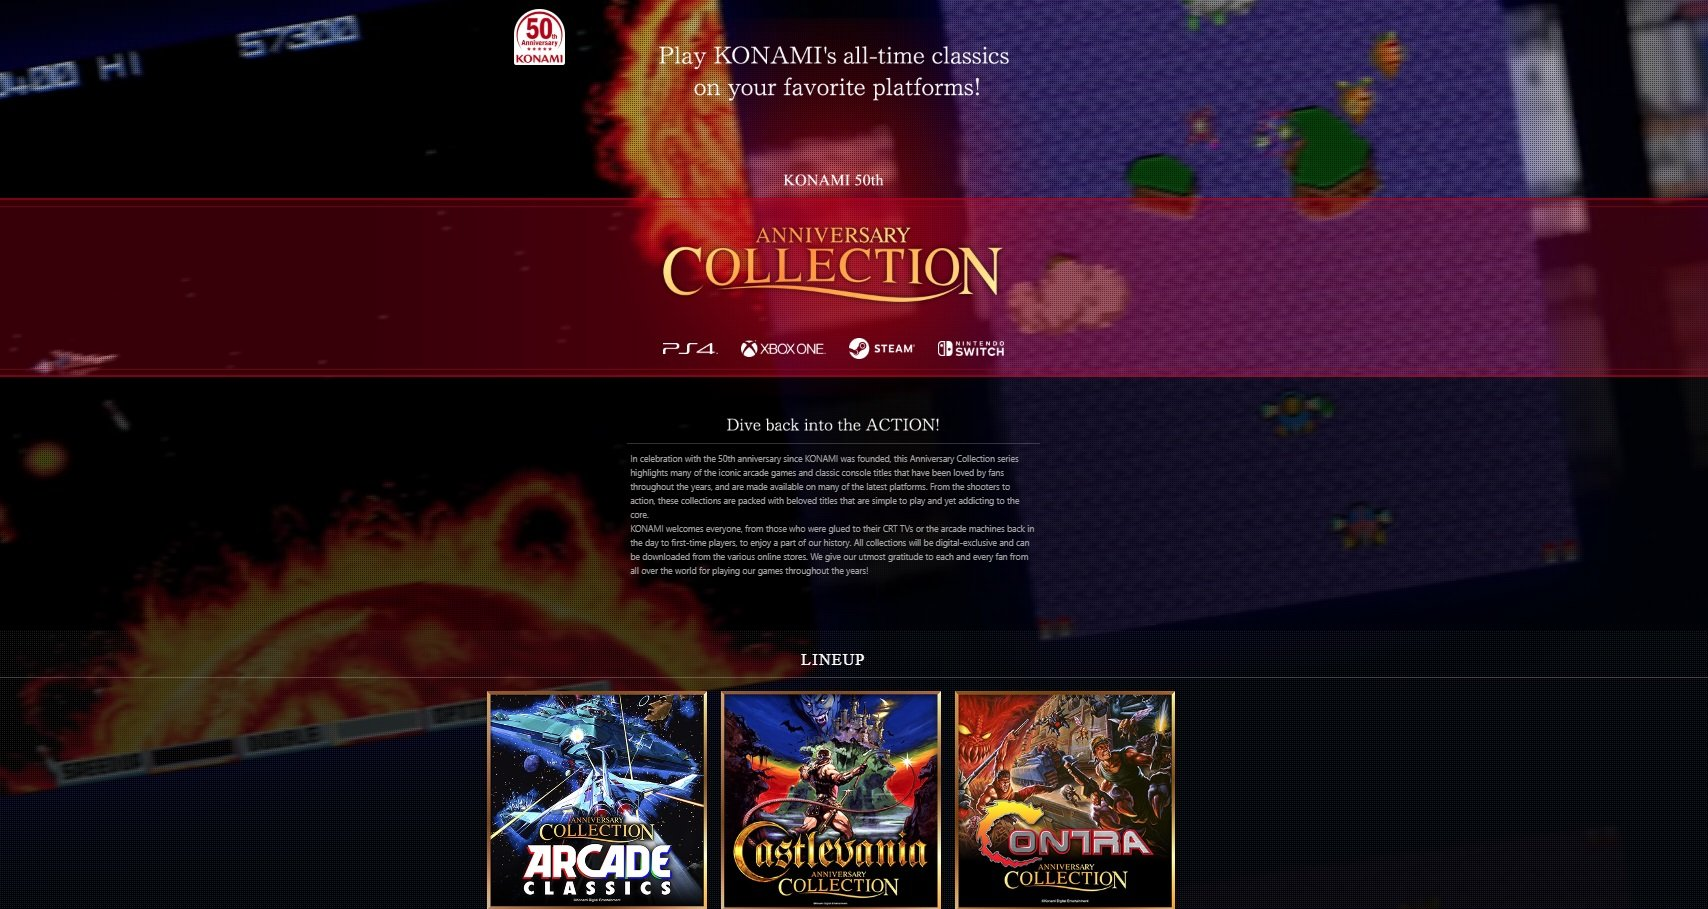 Konami announced three new Anniversary Collection sets which include one for their Arcade Classics, one for Castlevania, and another for Contra.